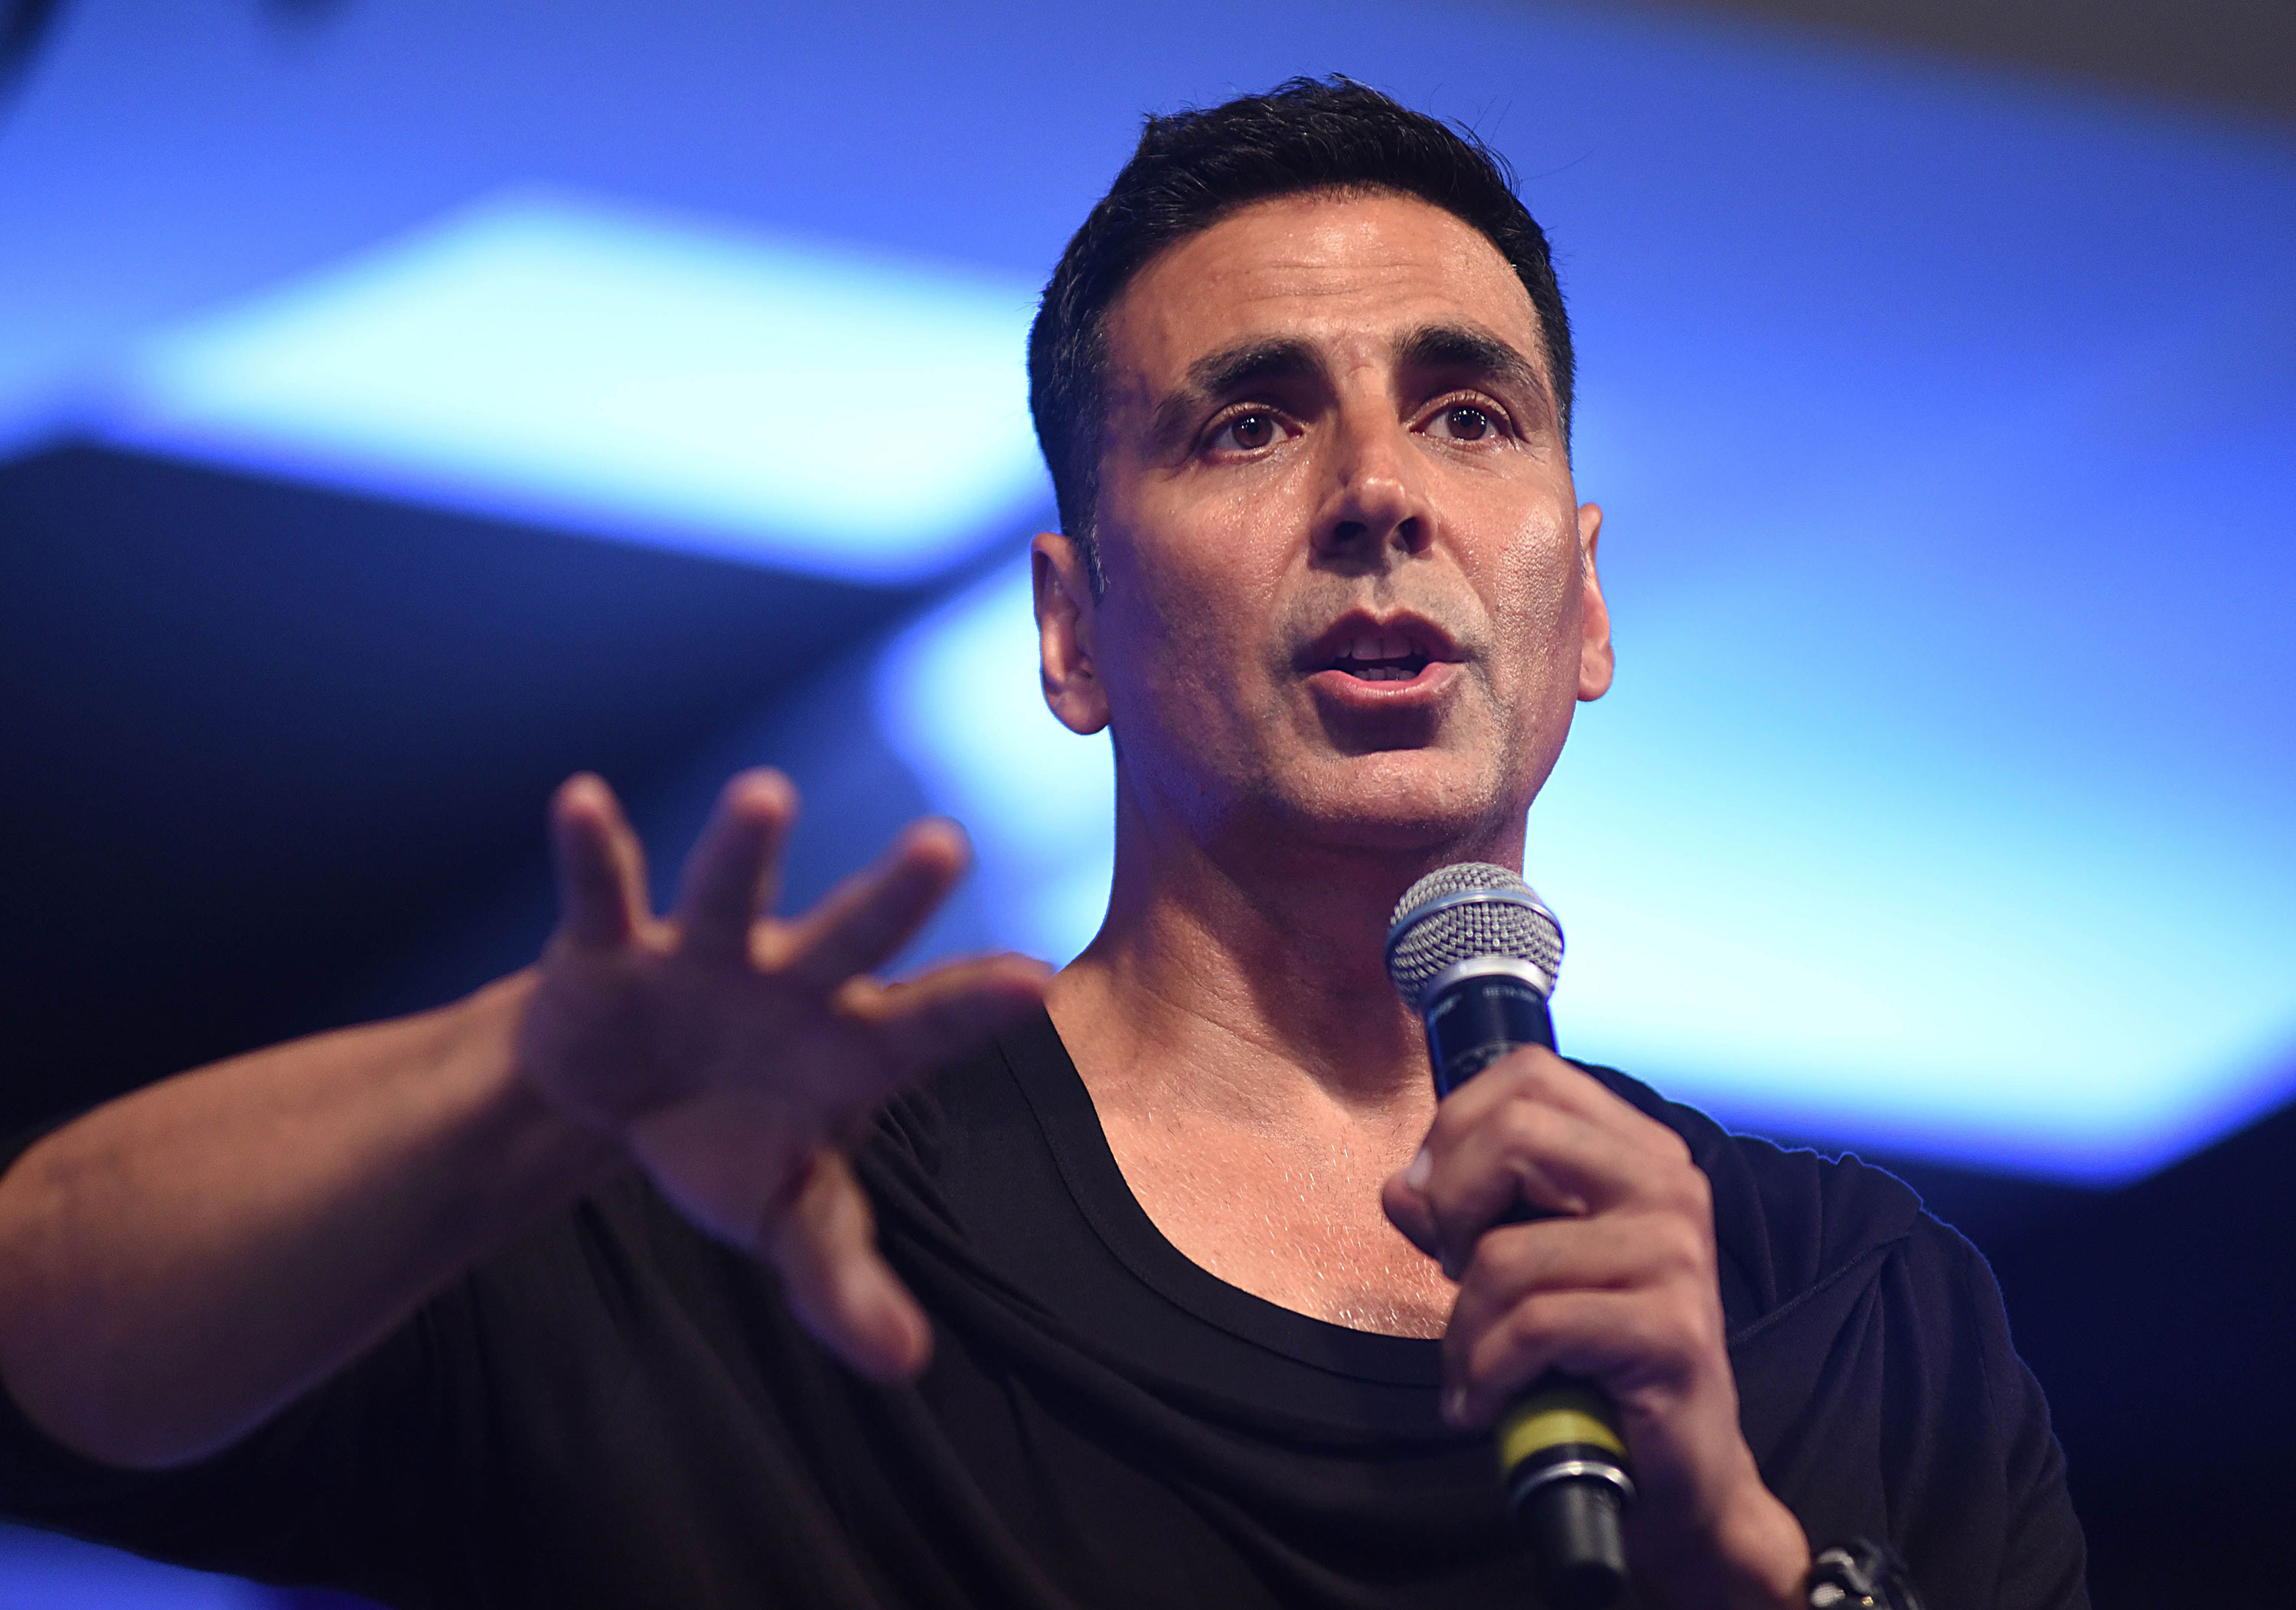 Bollywood actor Akshay Kumar said on Twitter that he had made a donation equivalent to $3.3 million to the PM CARES fund.